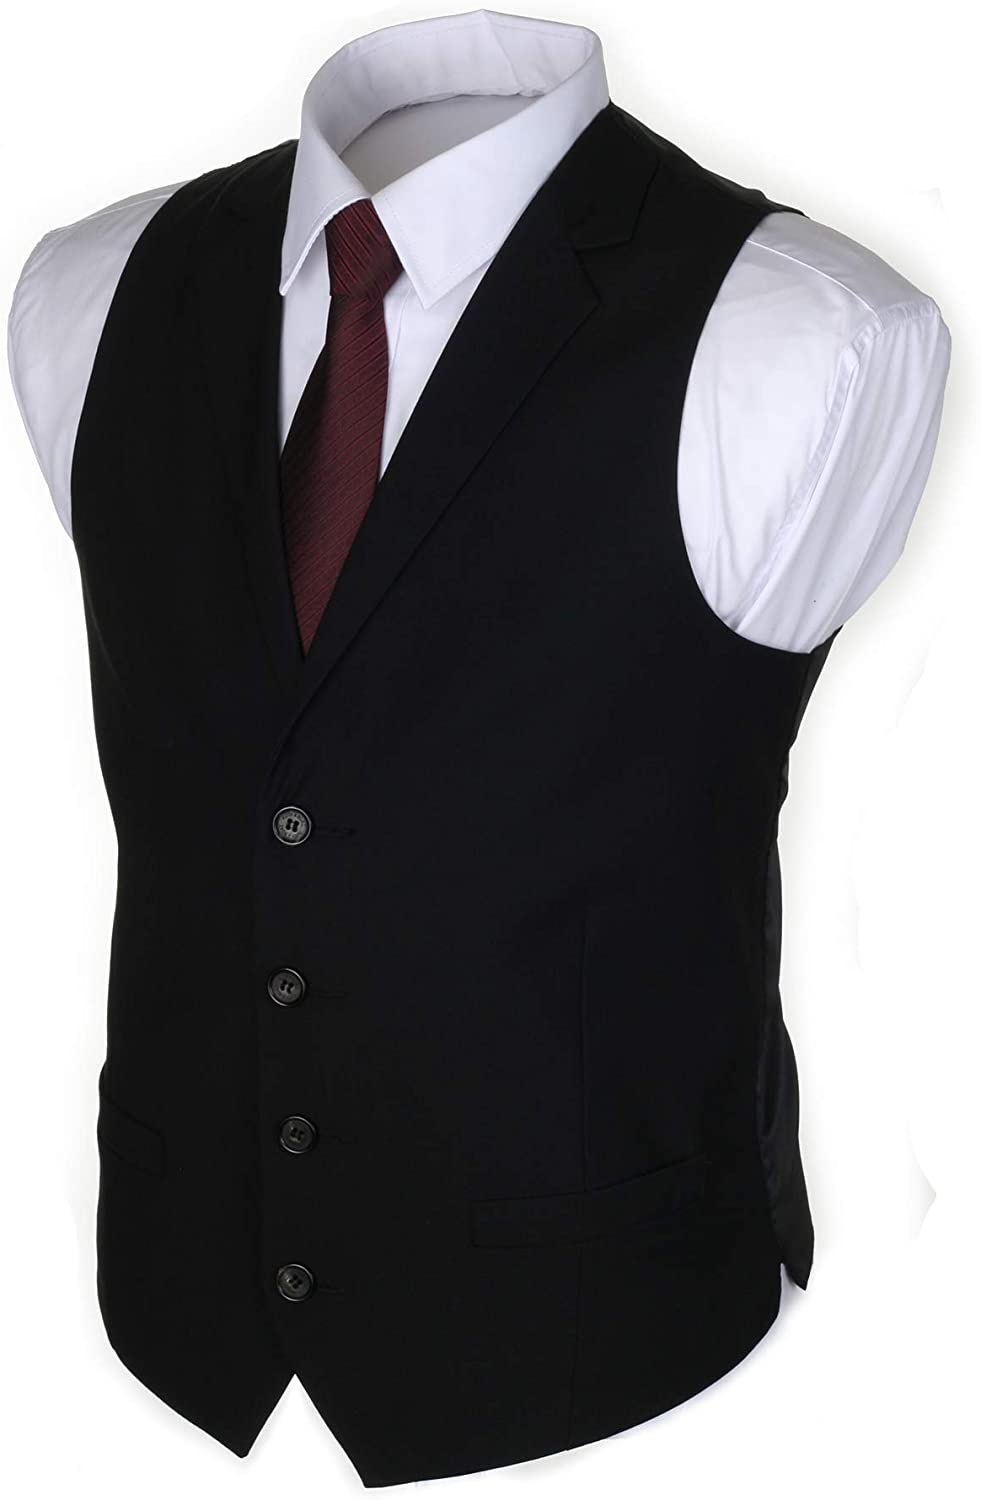 Ruth/&Boaz Mens 2Pockets 4Buttons Business Tailored Collar Suit Waistcoat